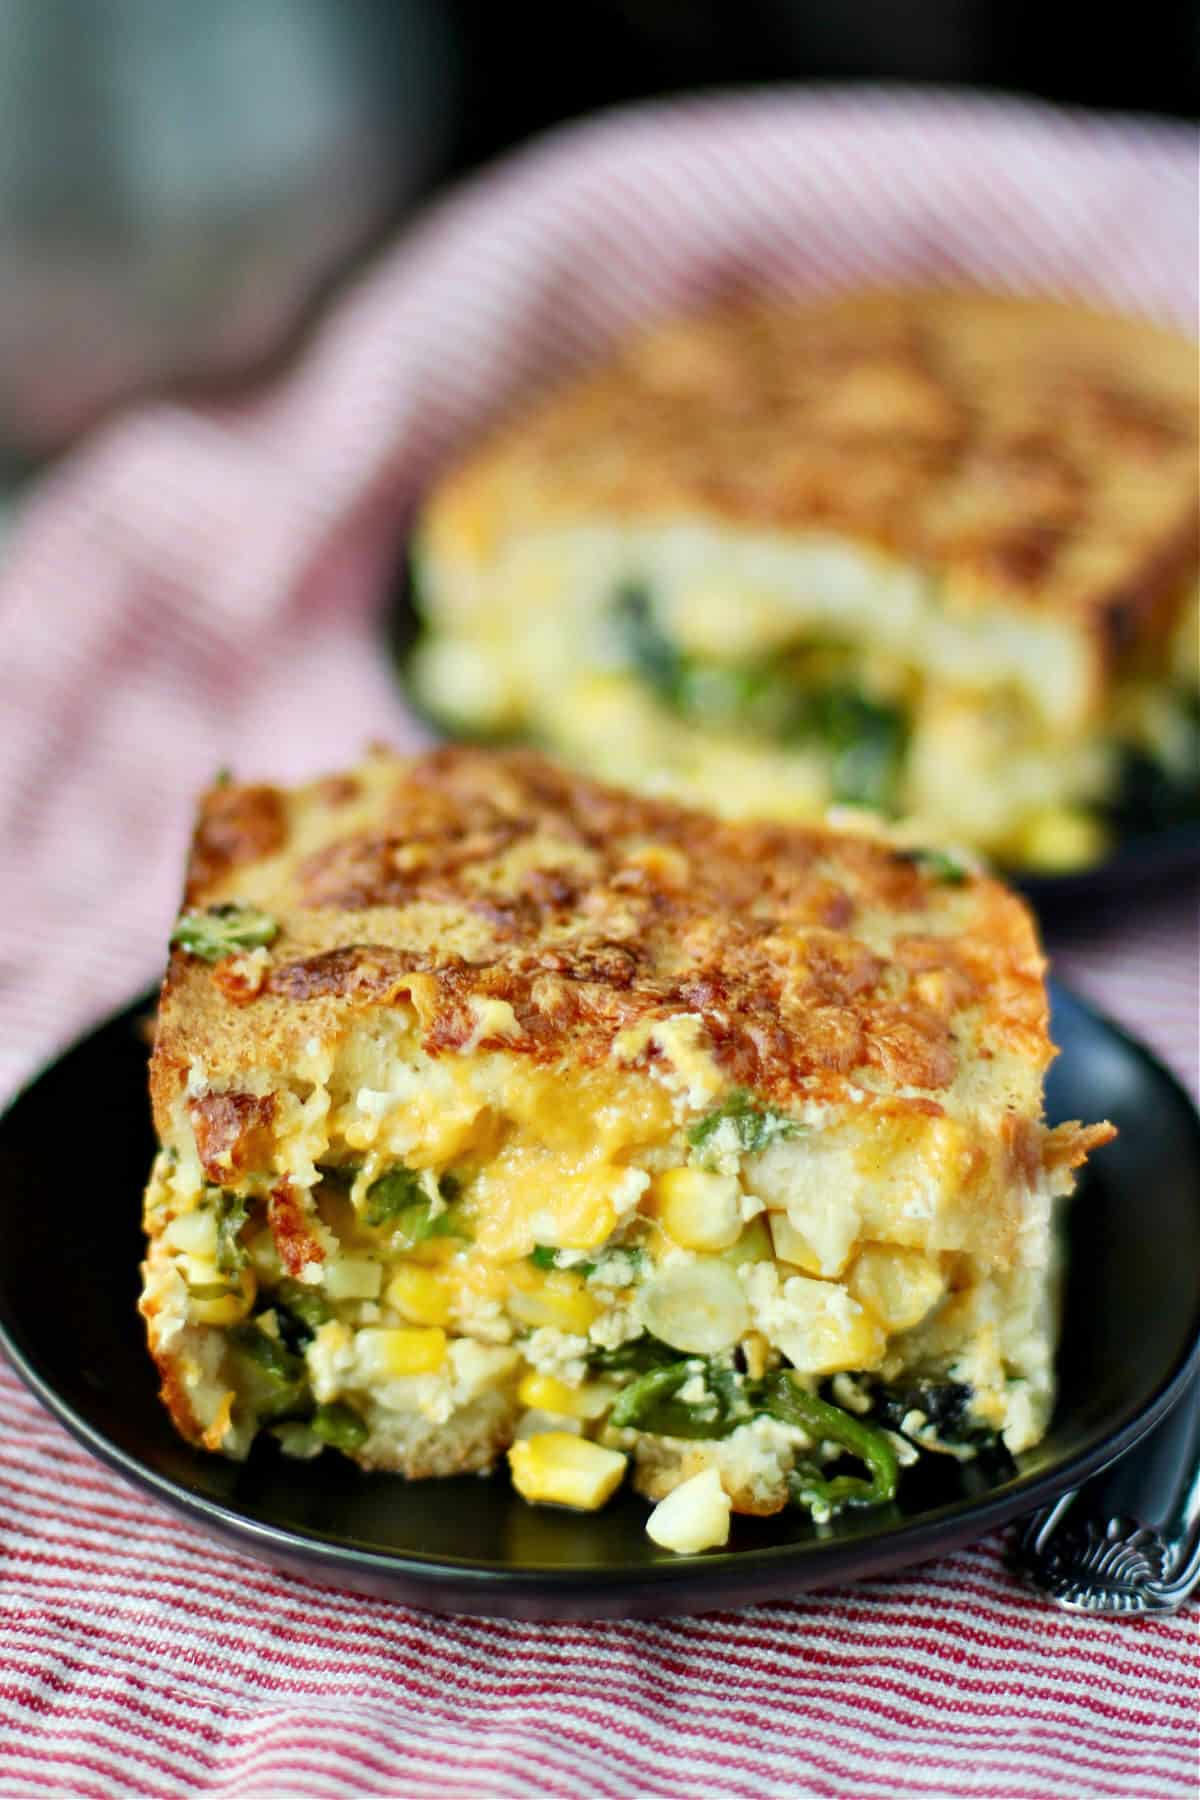 Breakfast strata with sweet corn on a plate.